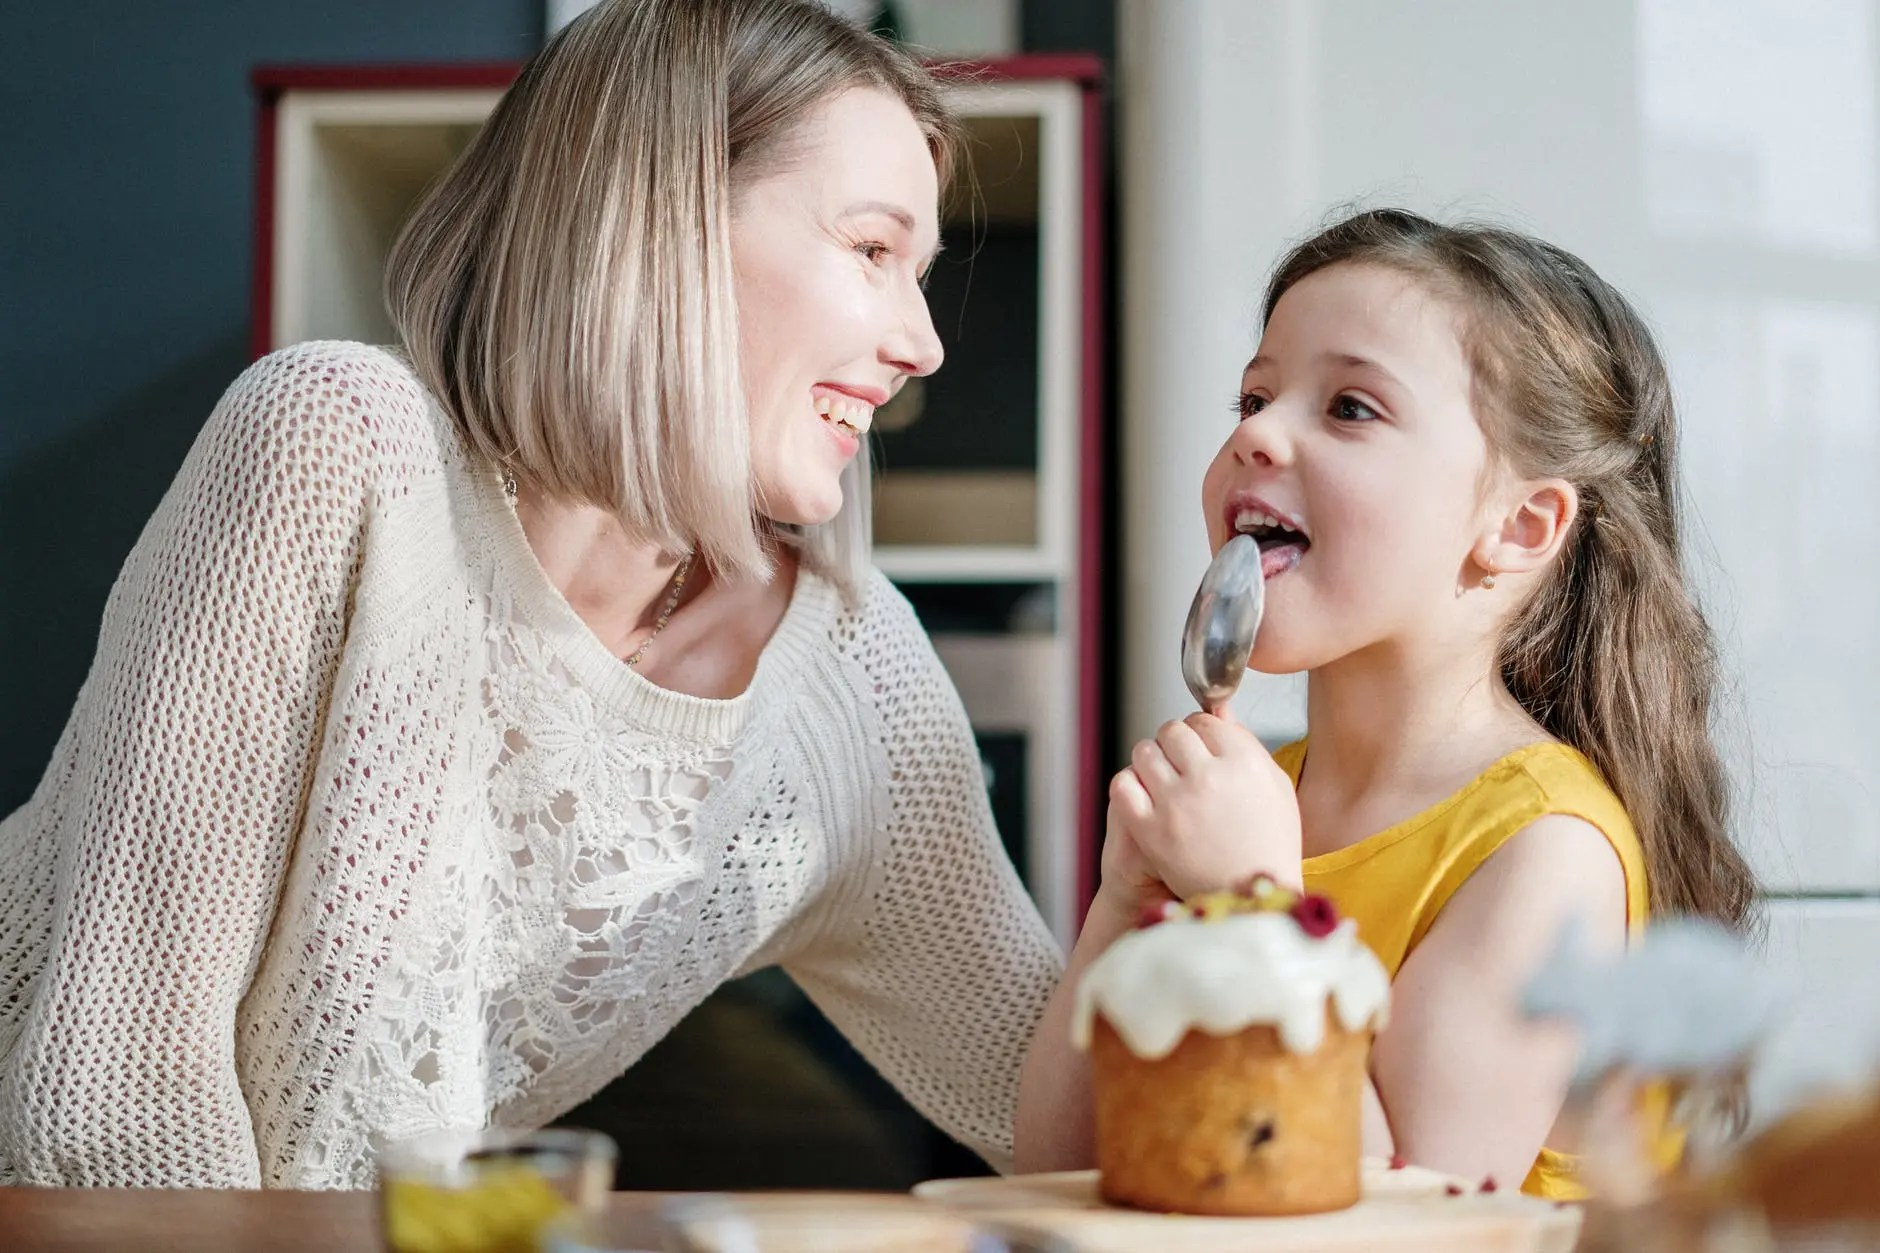 woman in white knit sweater smiling while little girl licking icing on her spoon